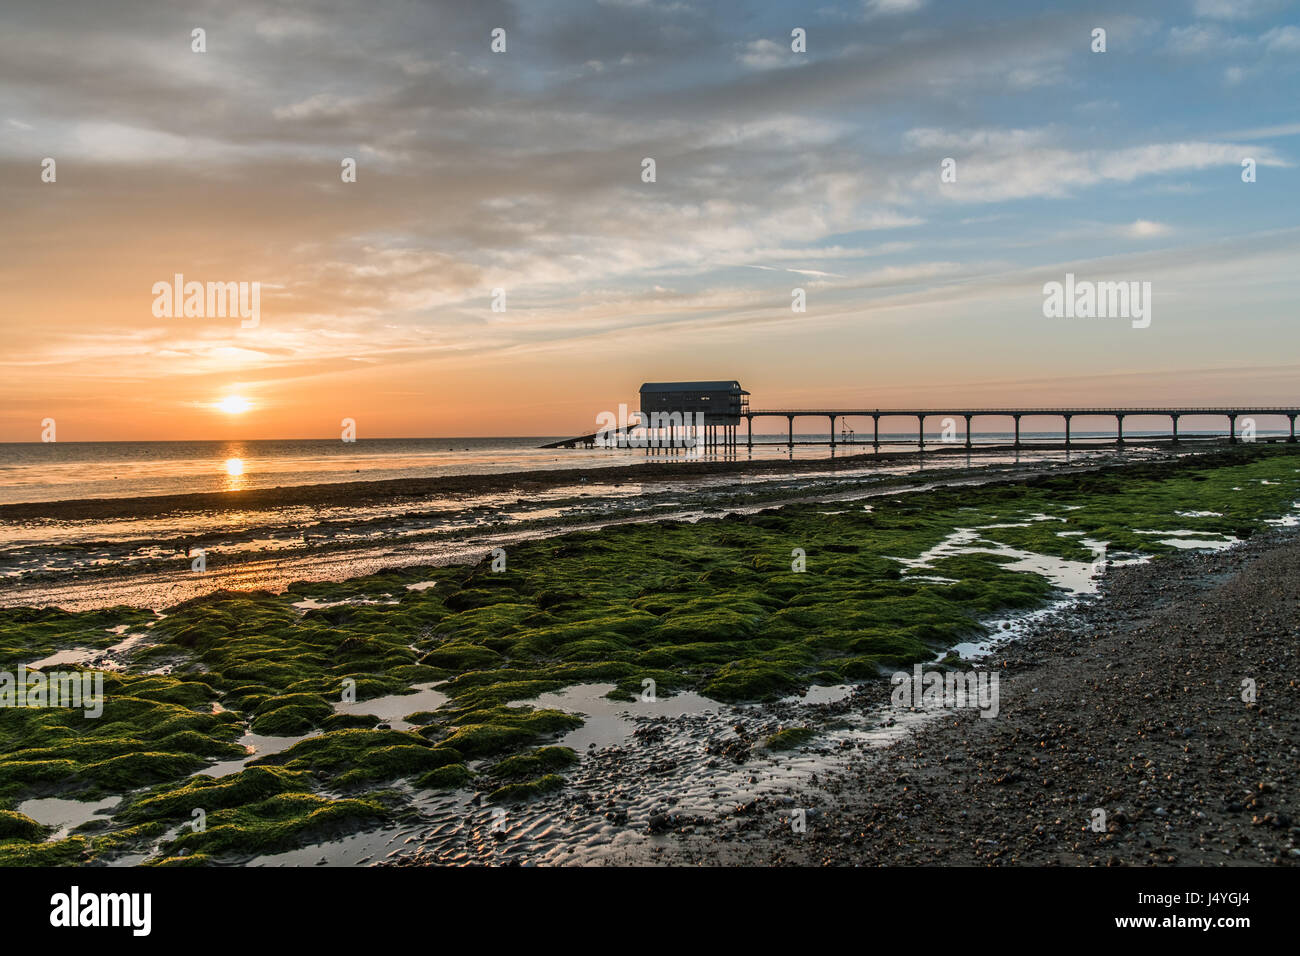 Sonnenaufgang am bembridge isle of wight pier und boot for Grune algen